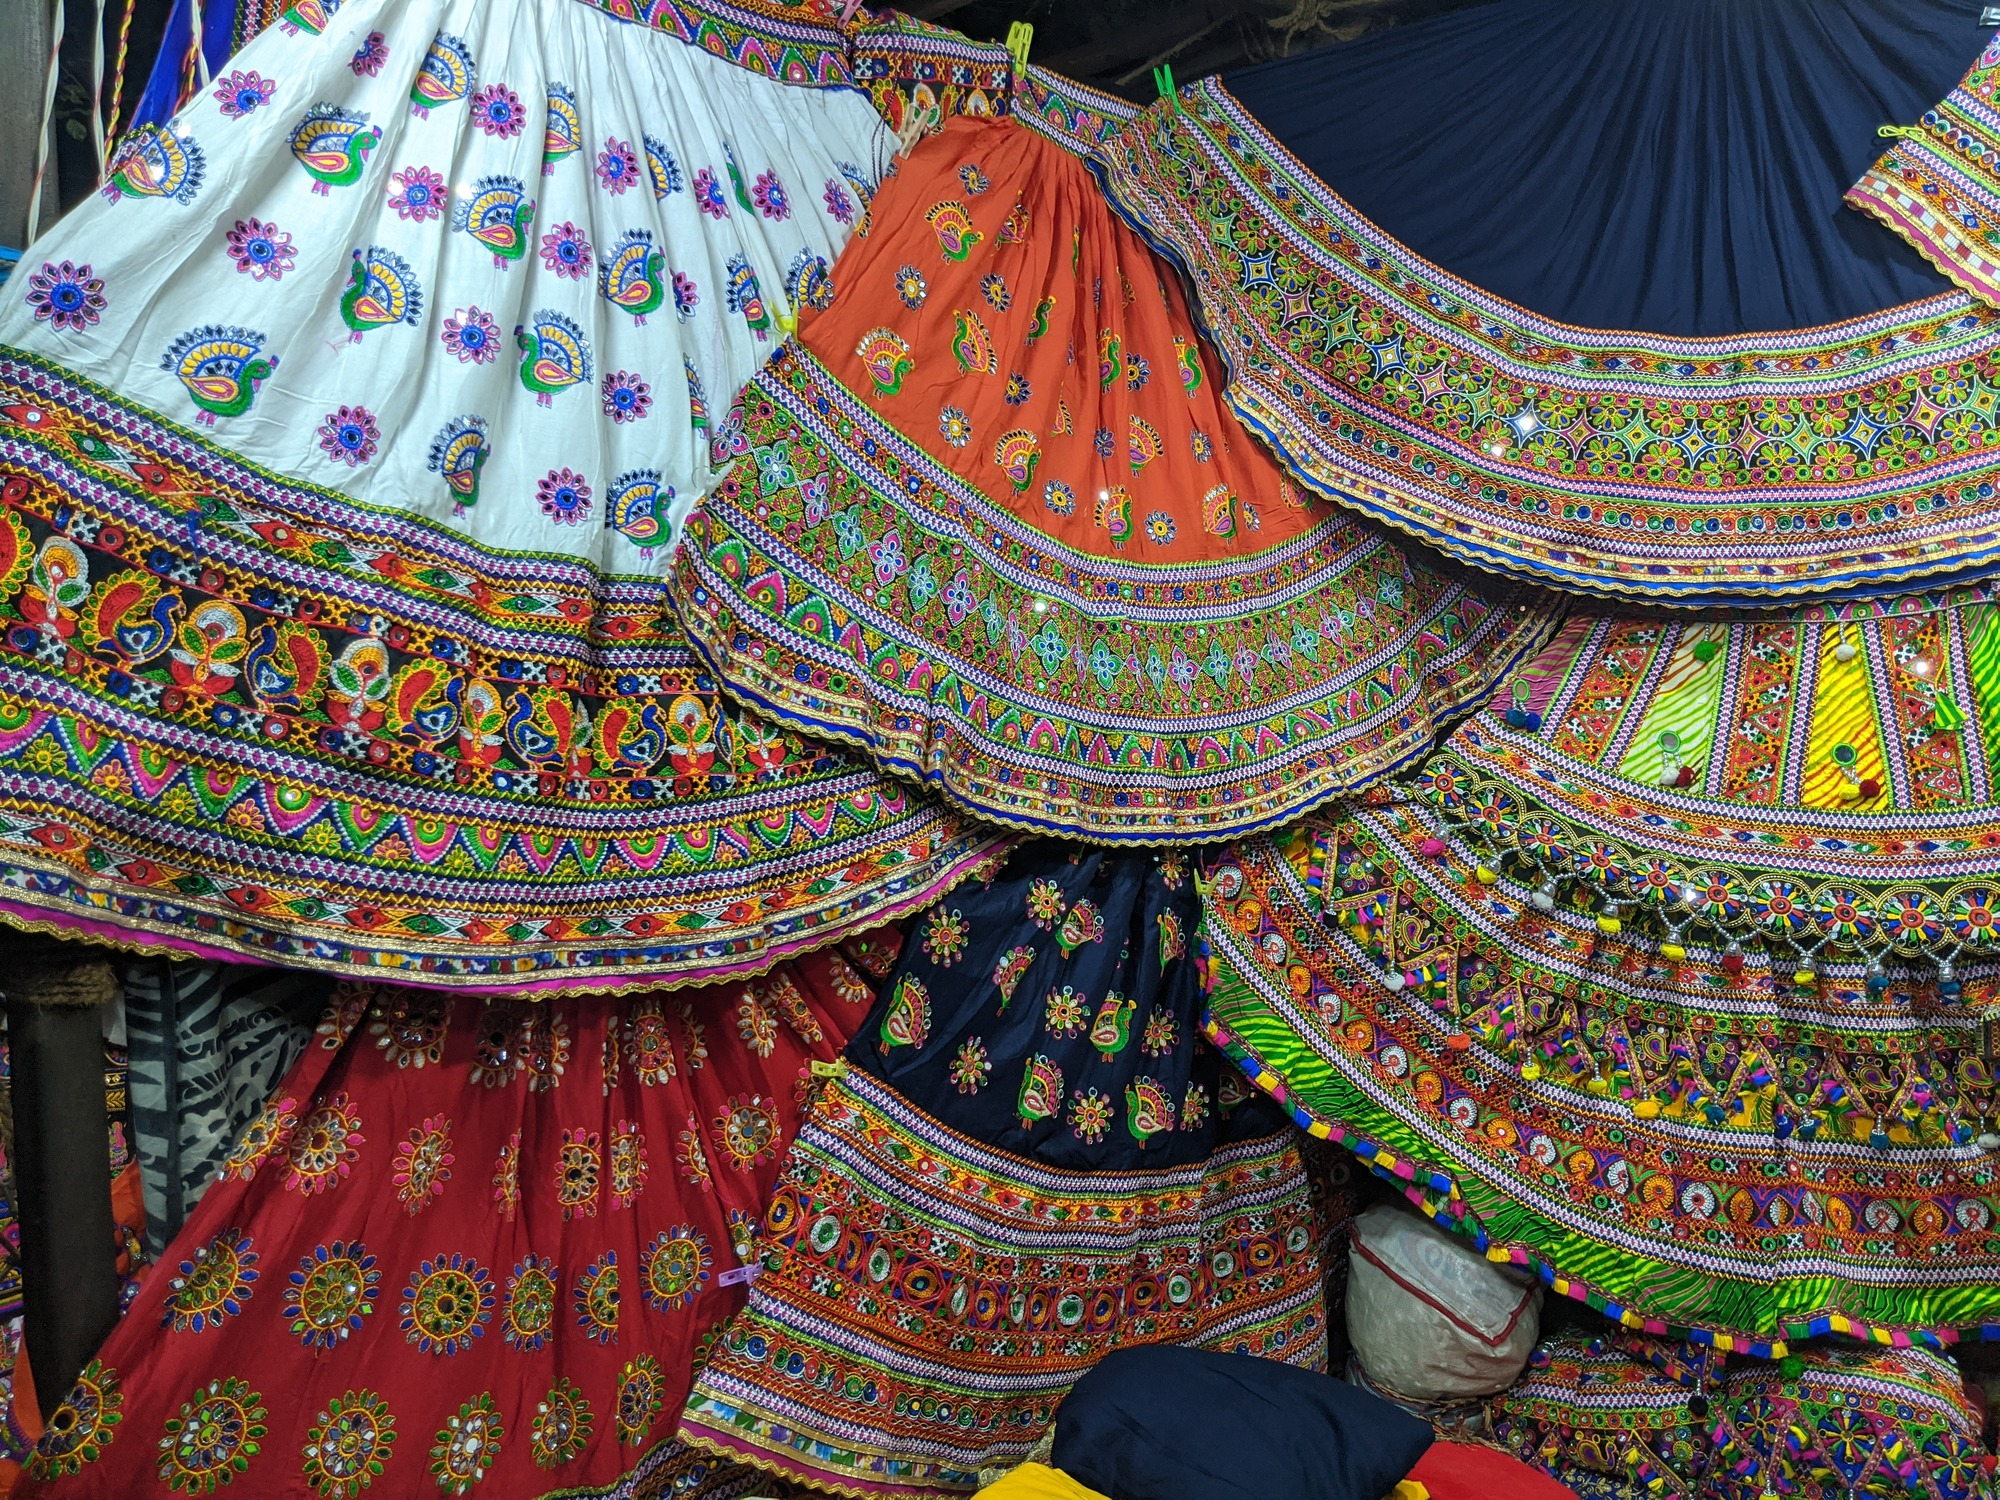 Colourful Lehnga or langa, a form of full ankle-length skirt